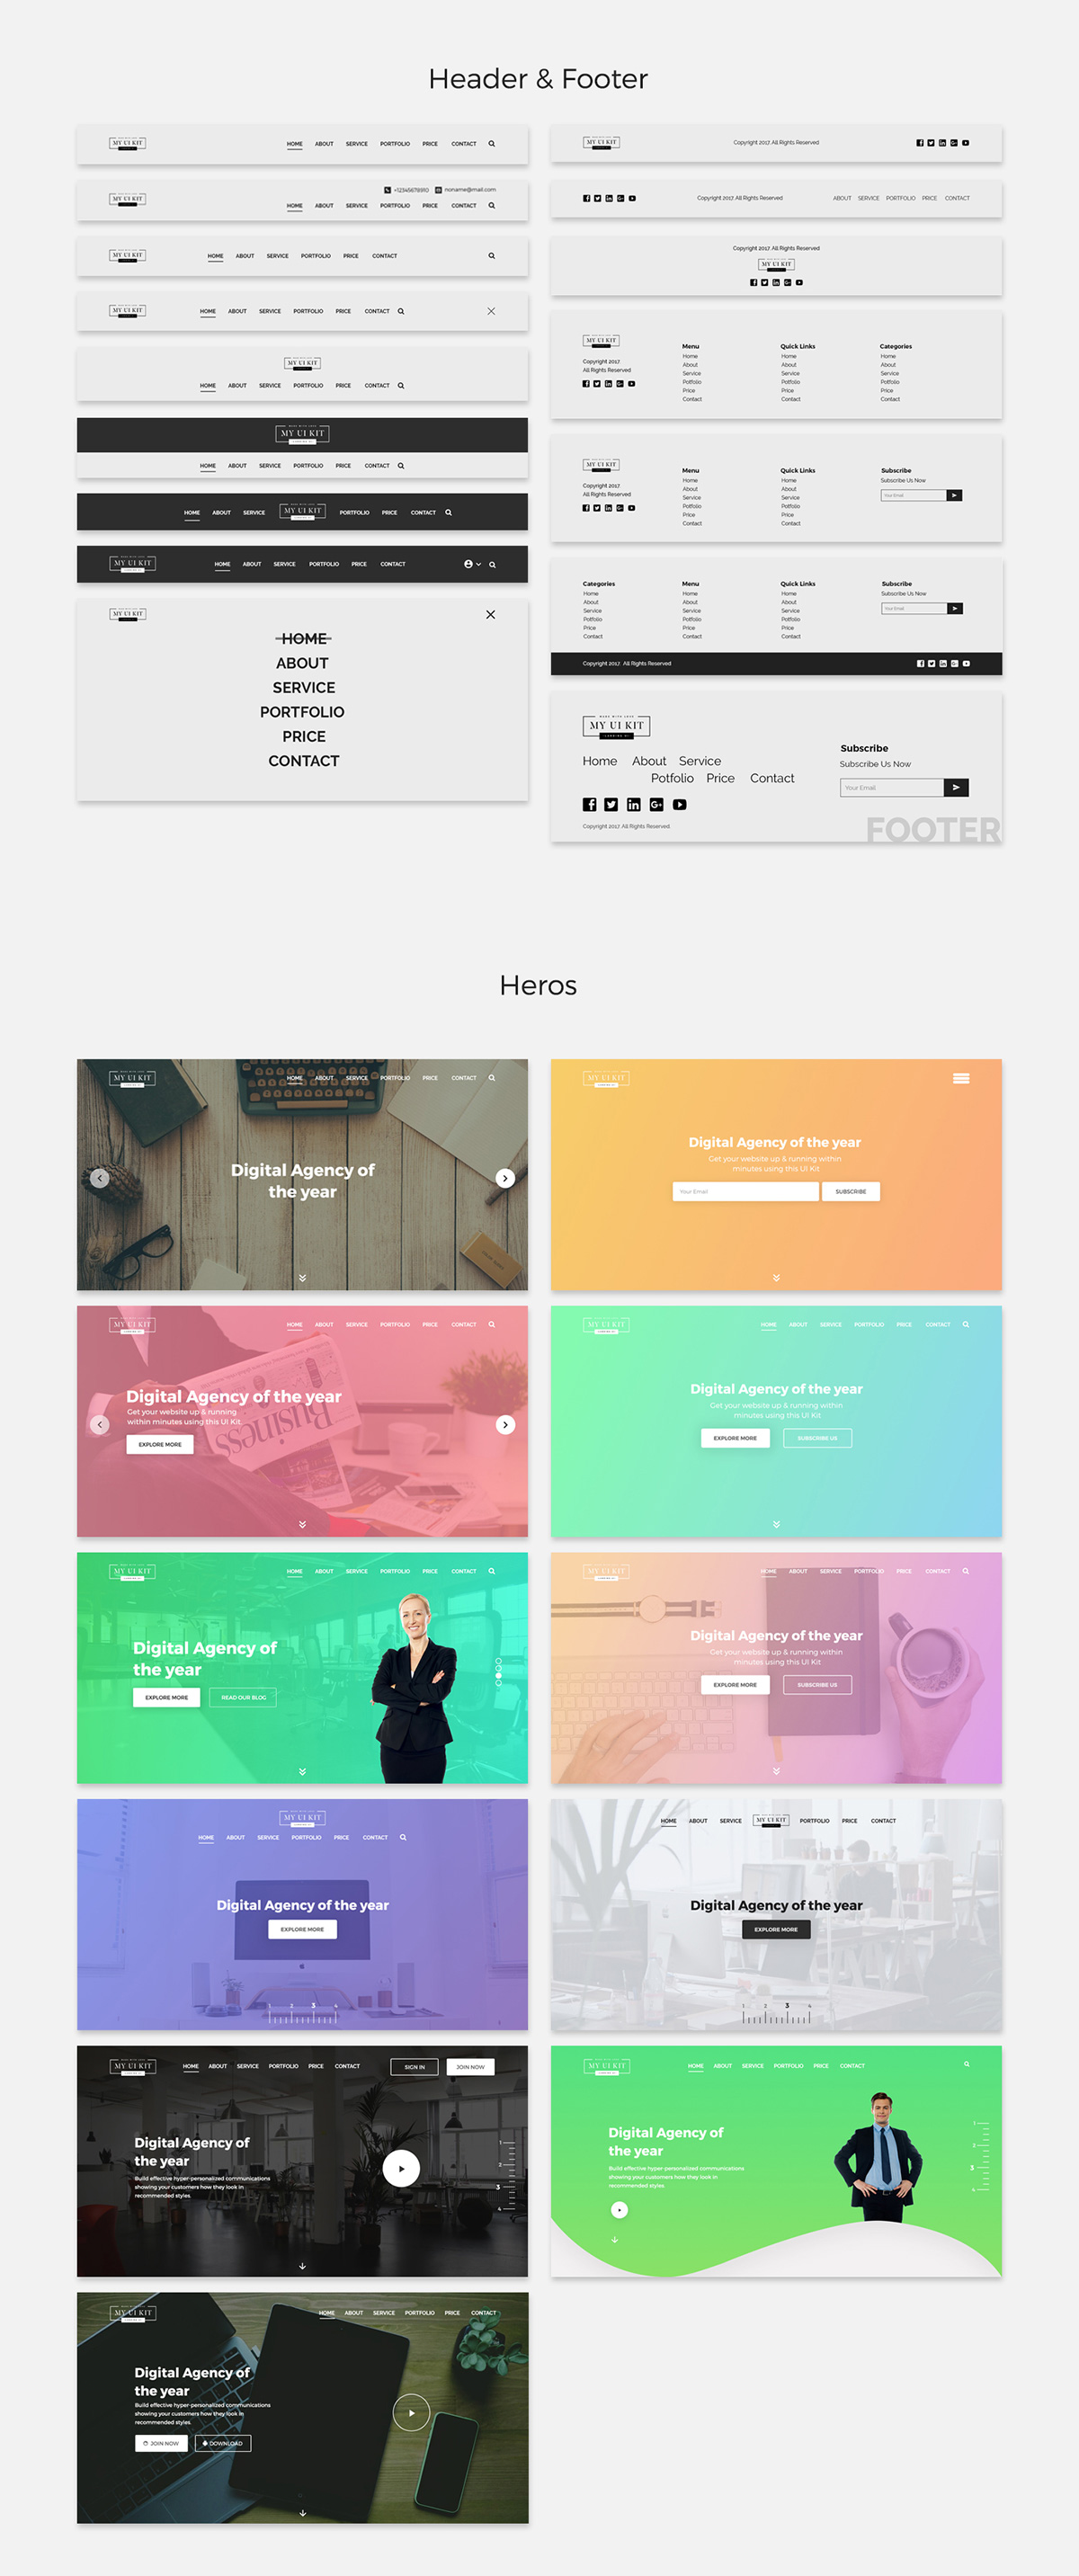 Free Landing Page UI Kit for PSD - Layer managment